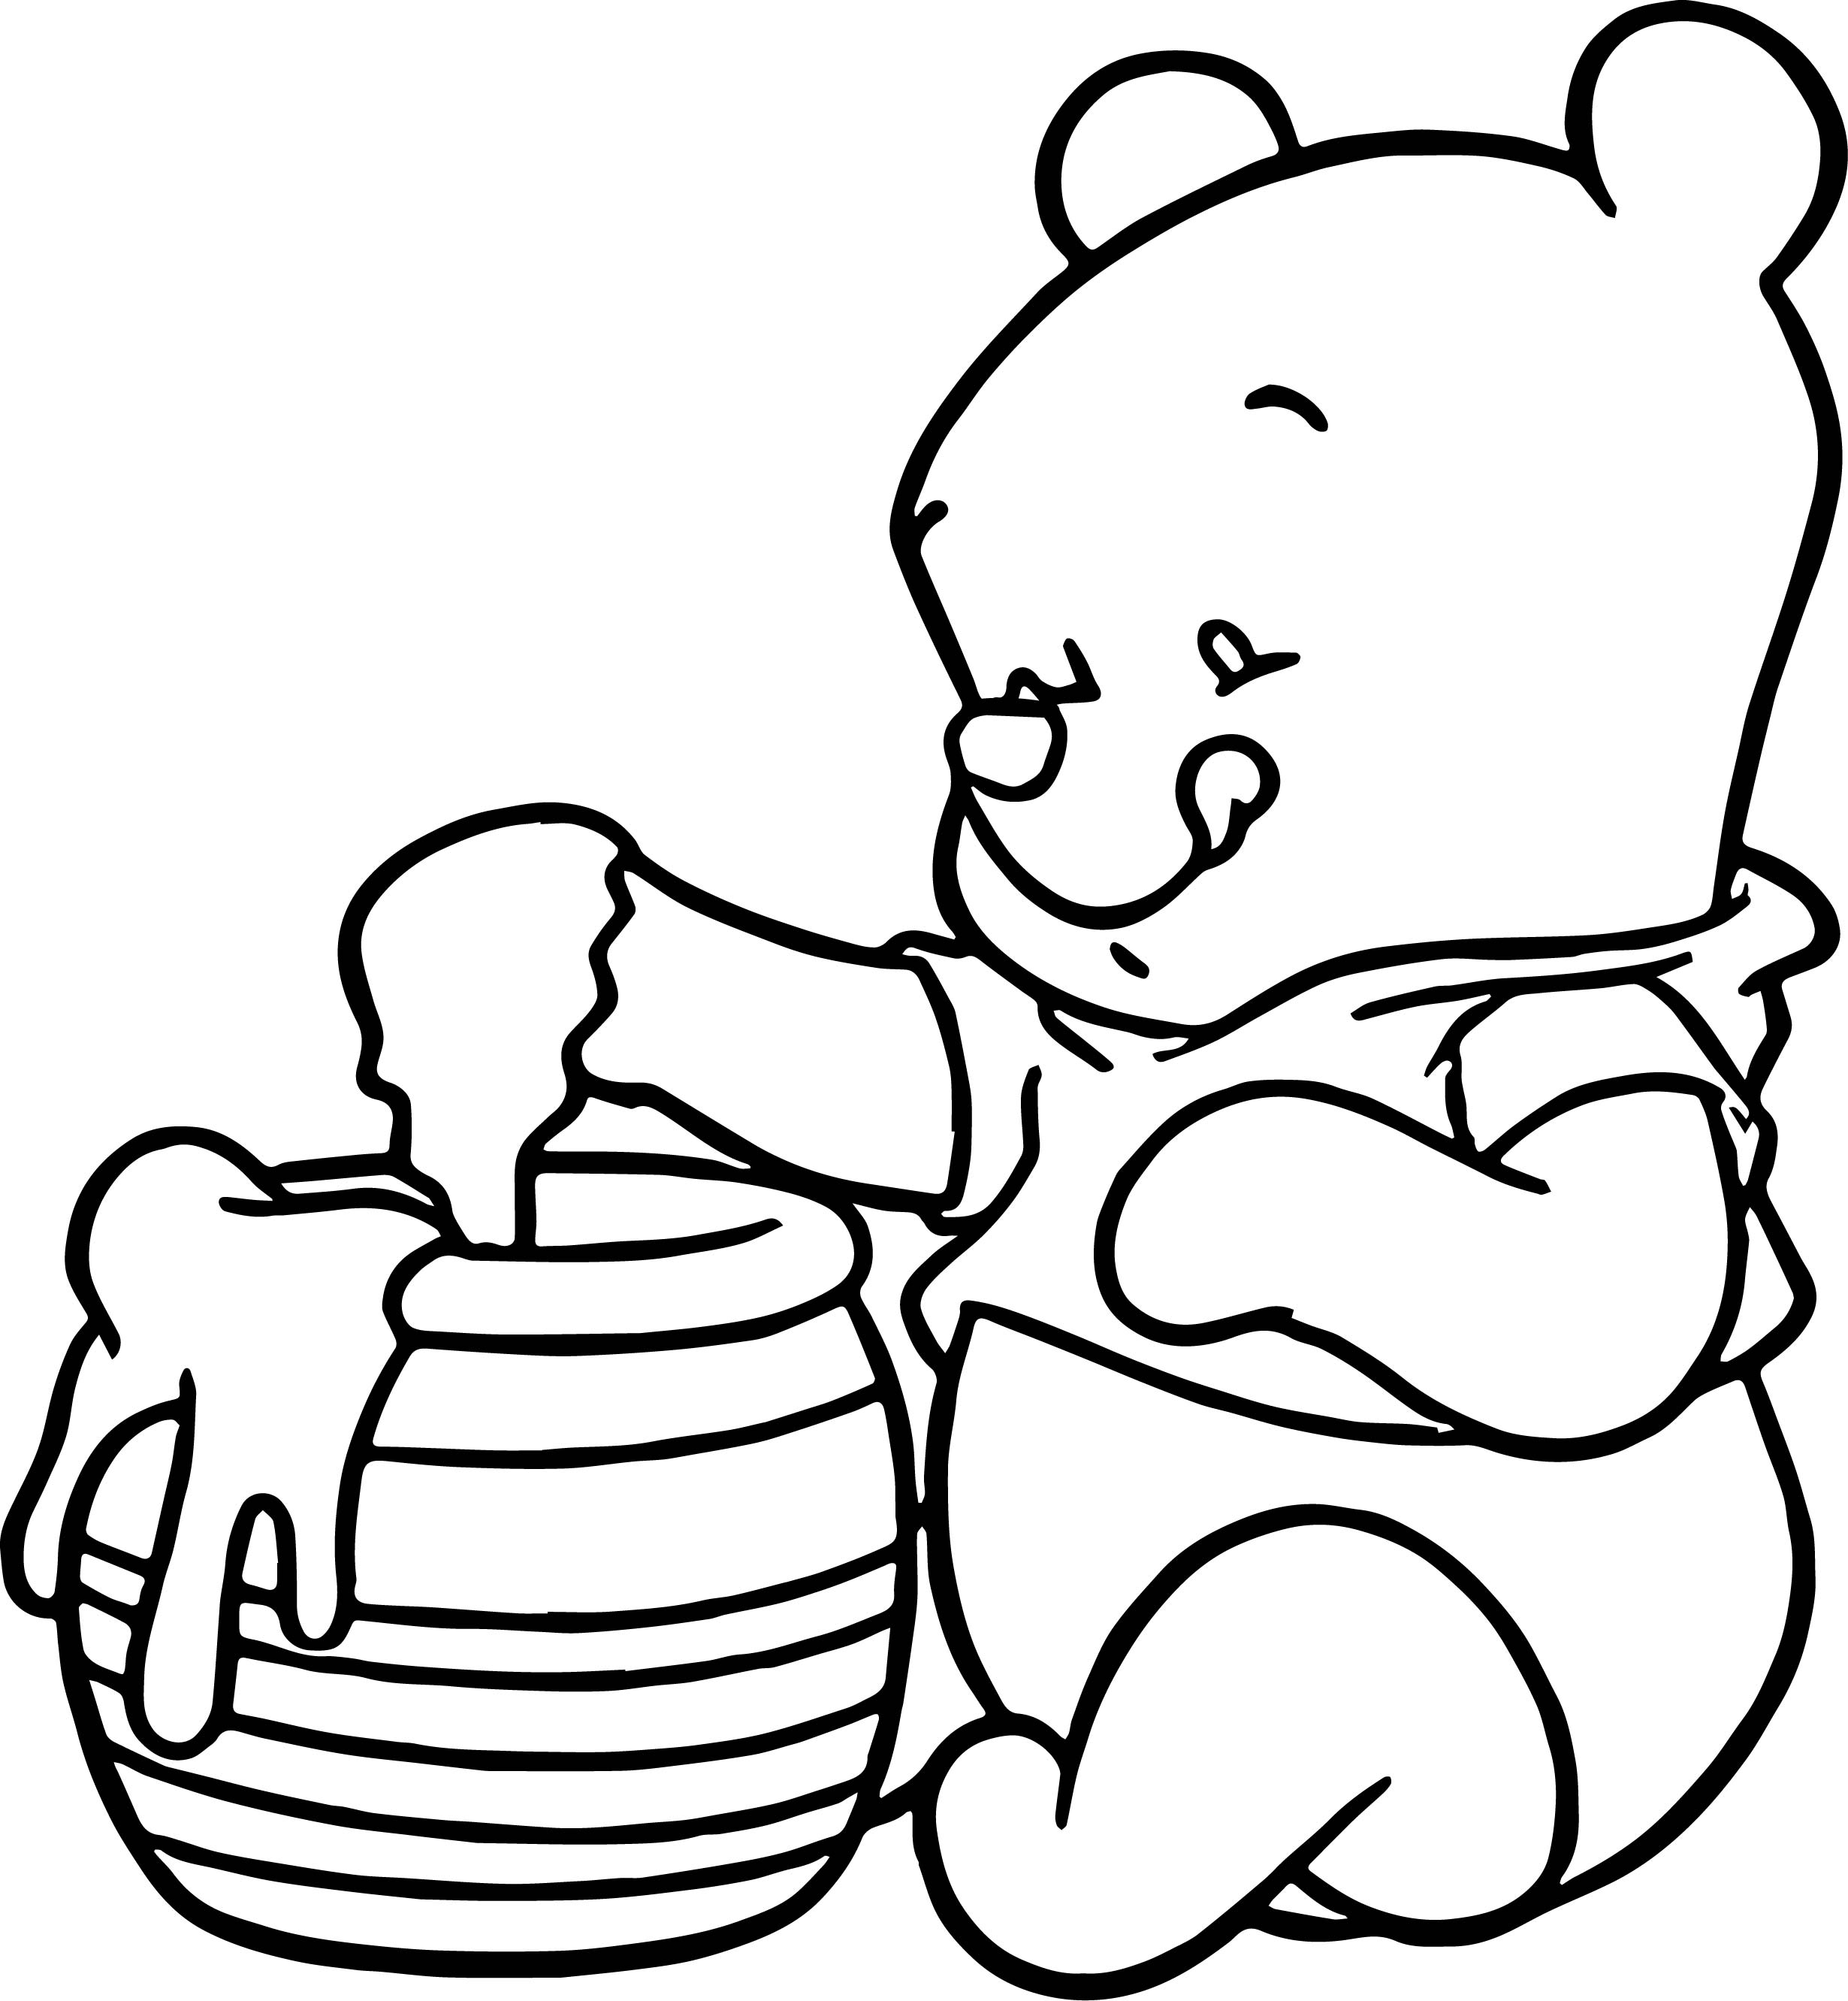 Baby Pooh Honey Coloring Page